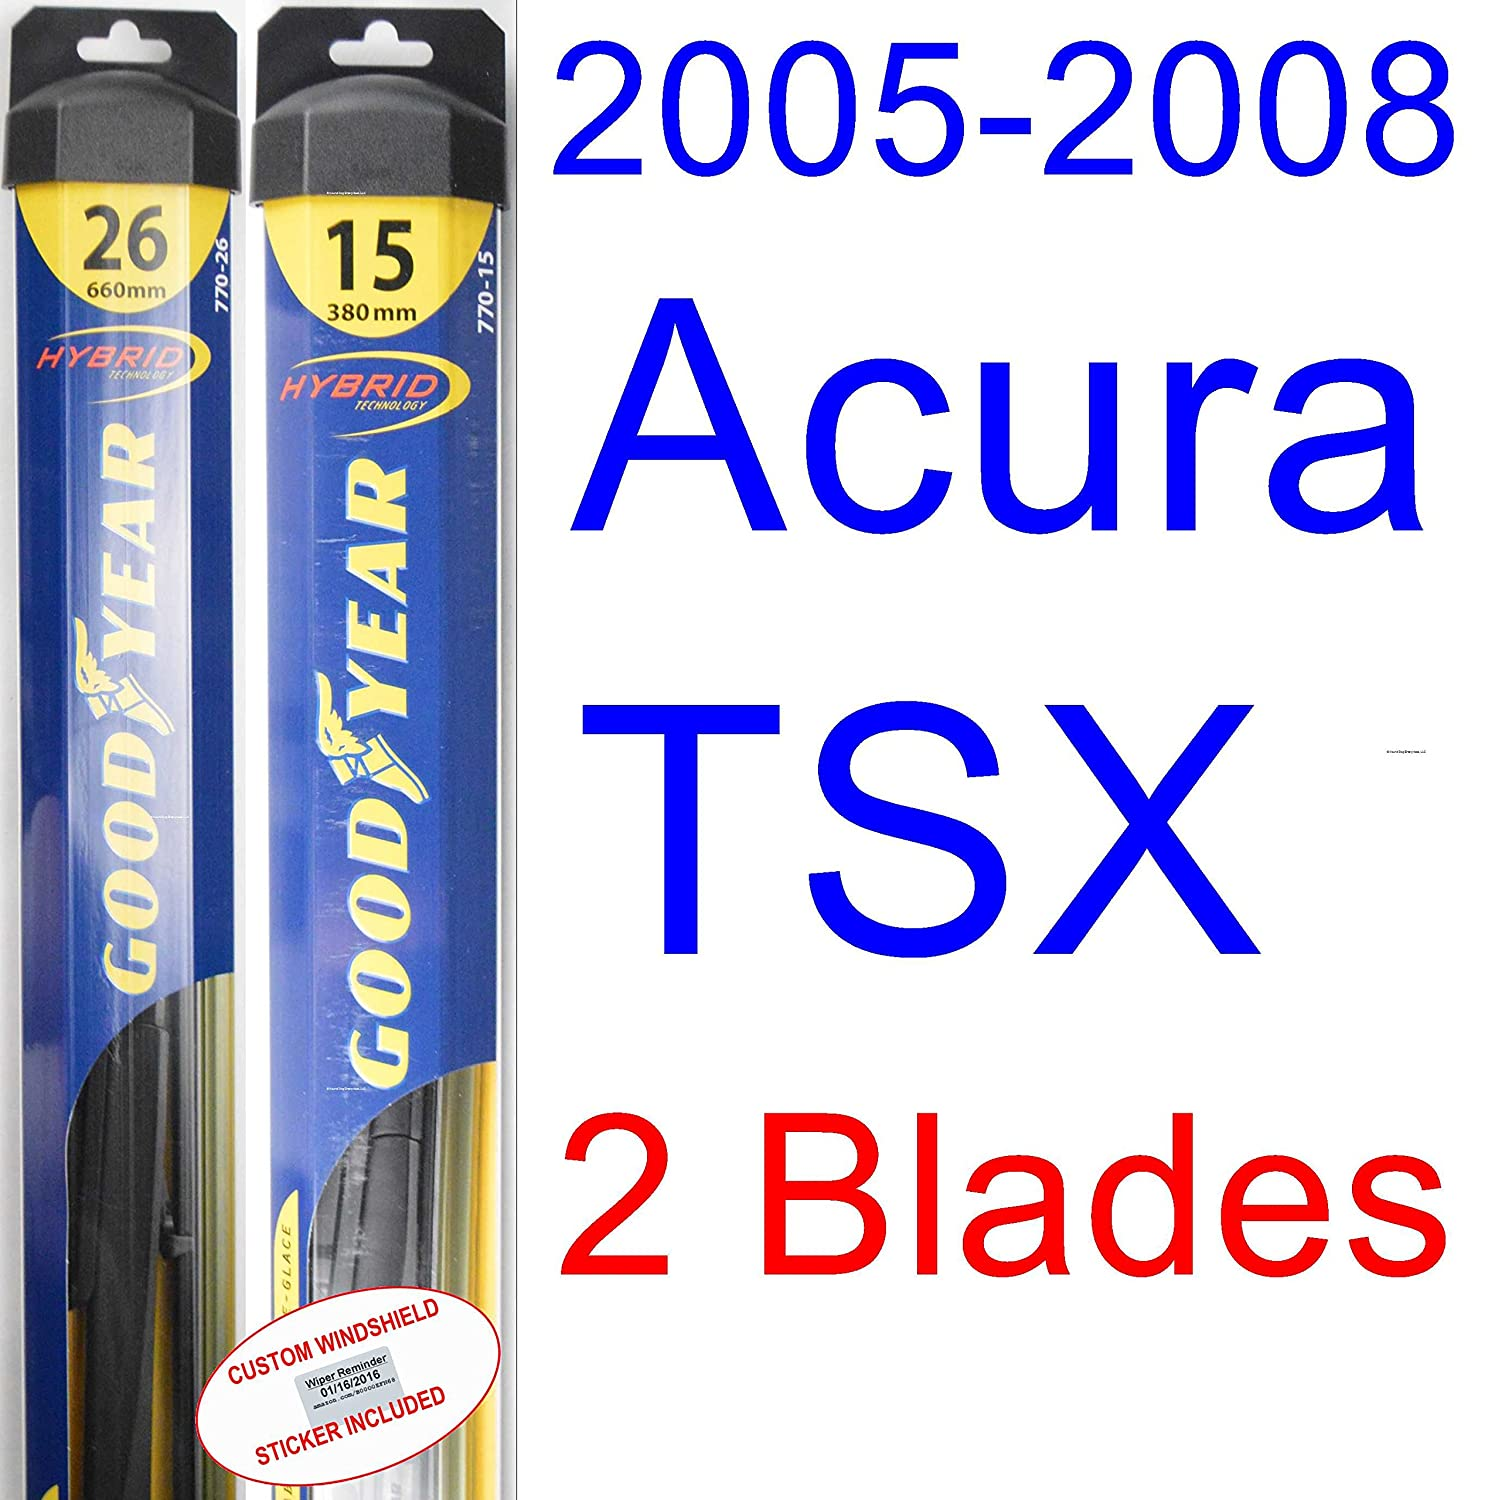 2005 2008 acura tsx replacement wiper blade set kit